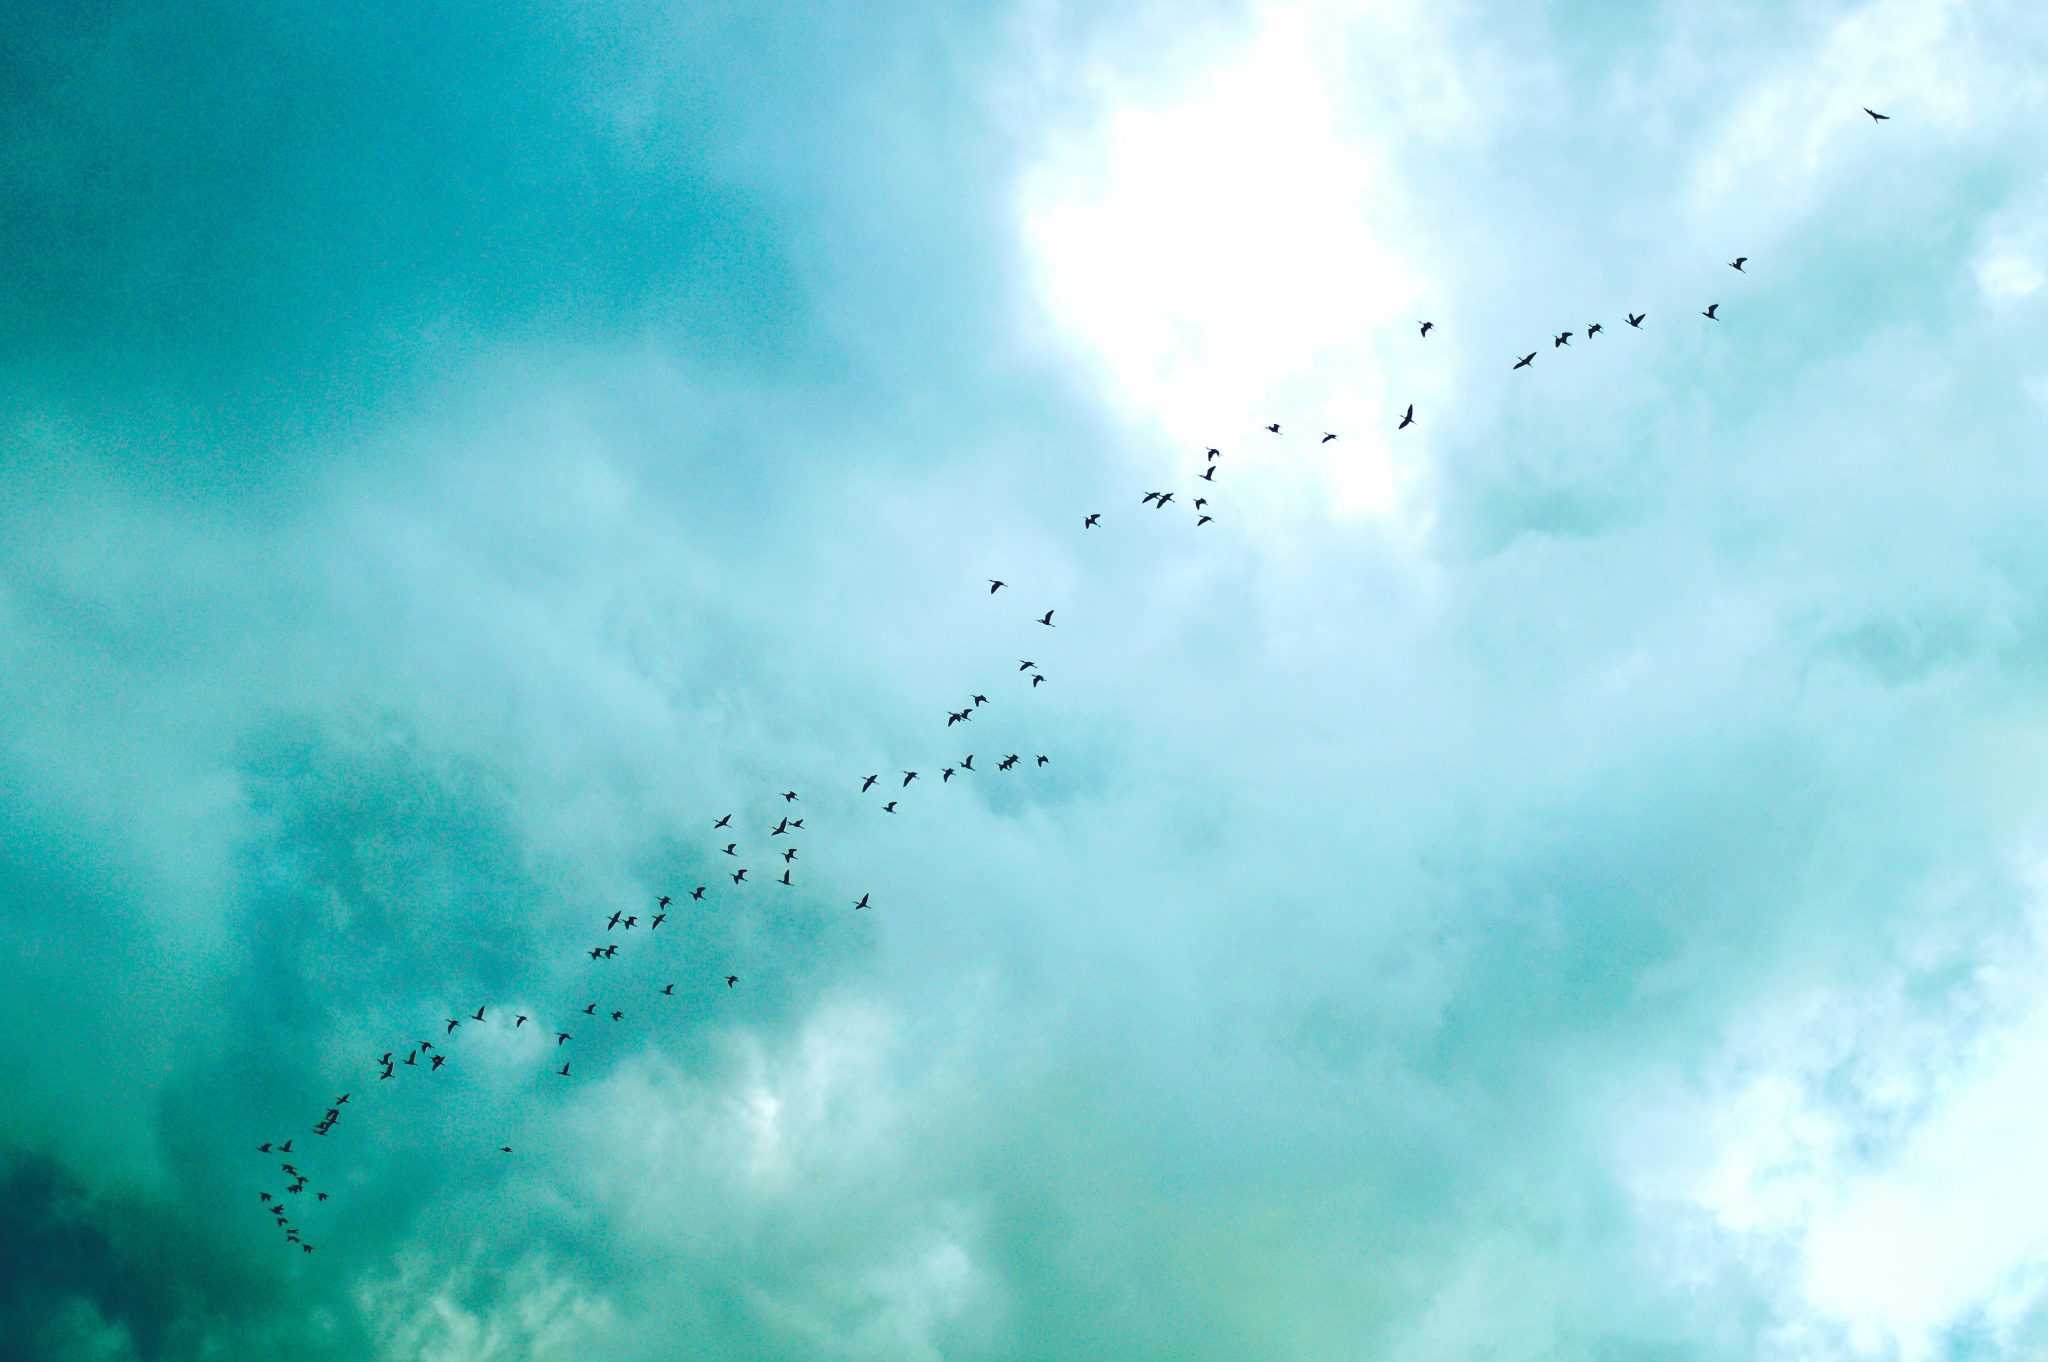 Birds Flying in a Turquoise Sky